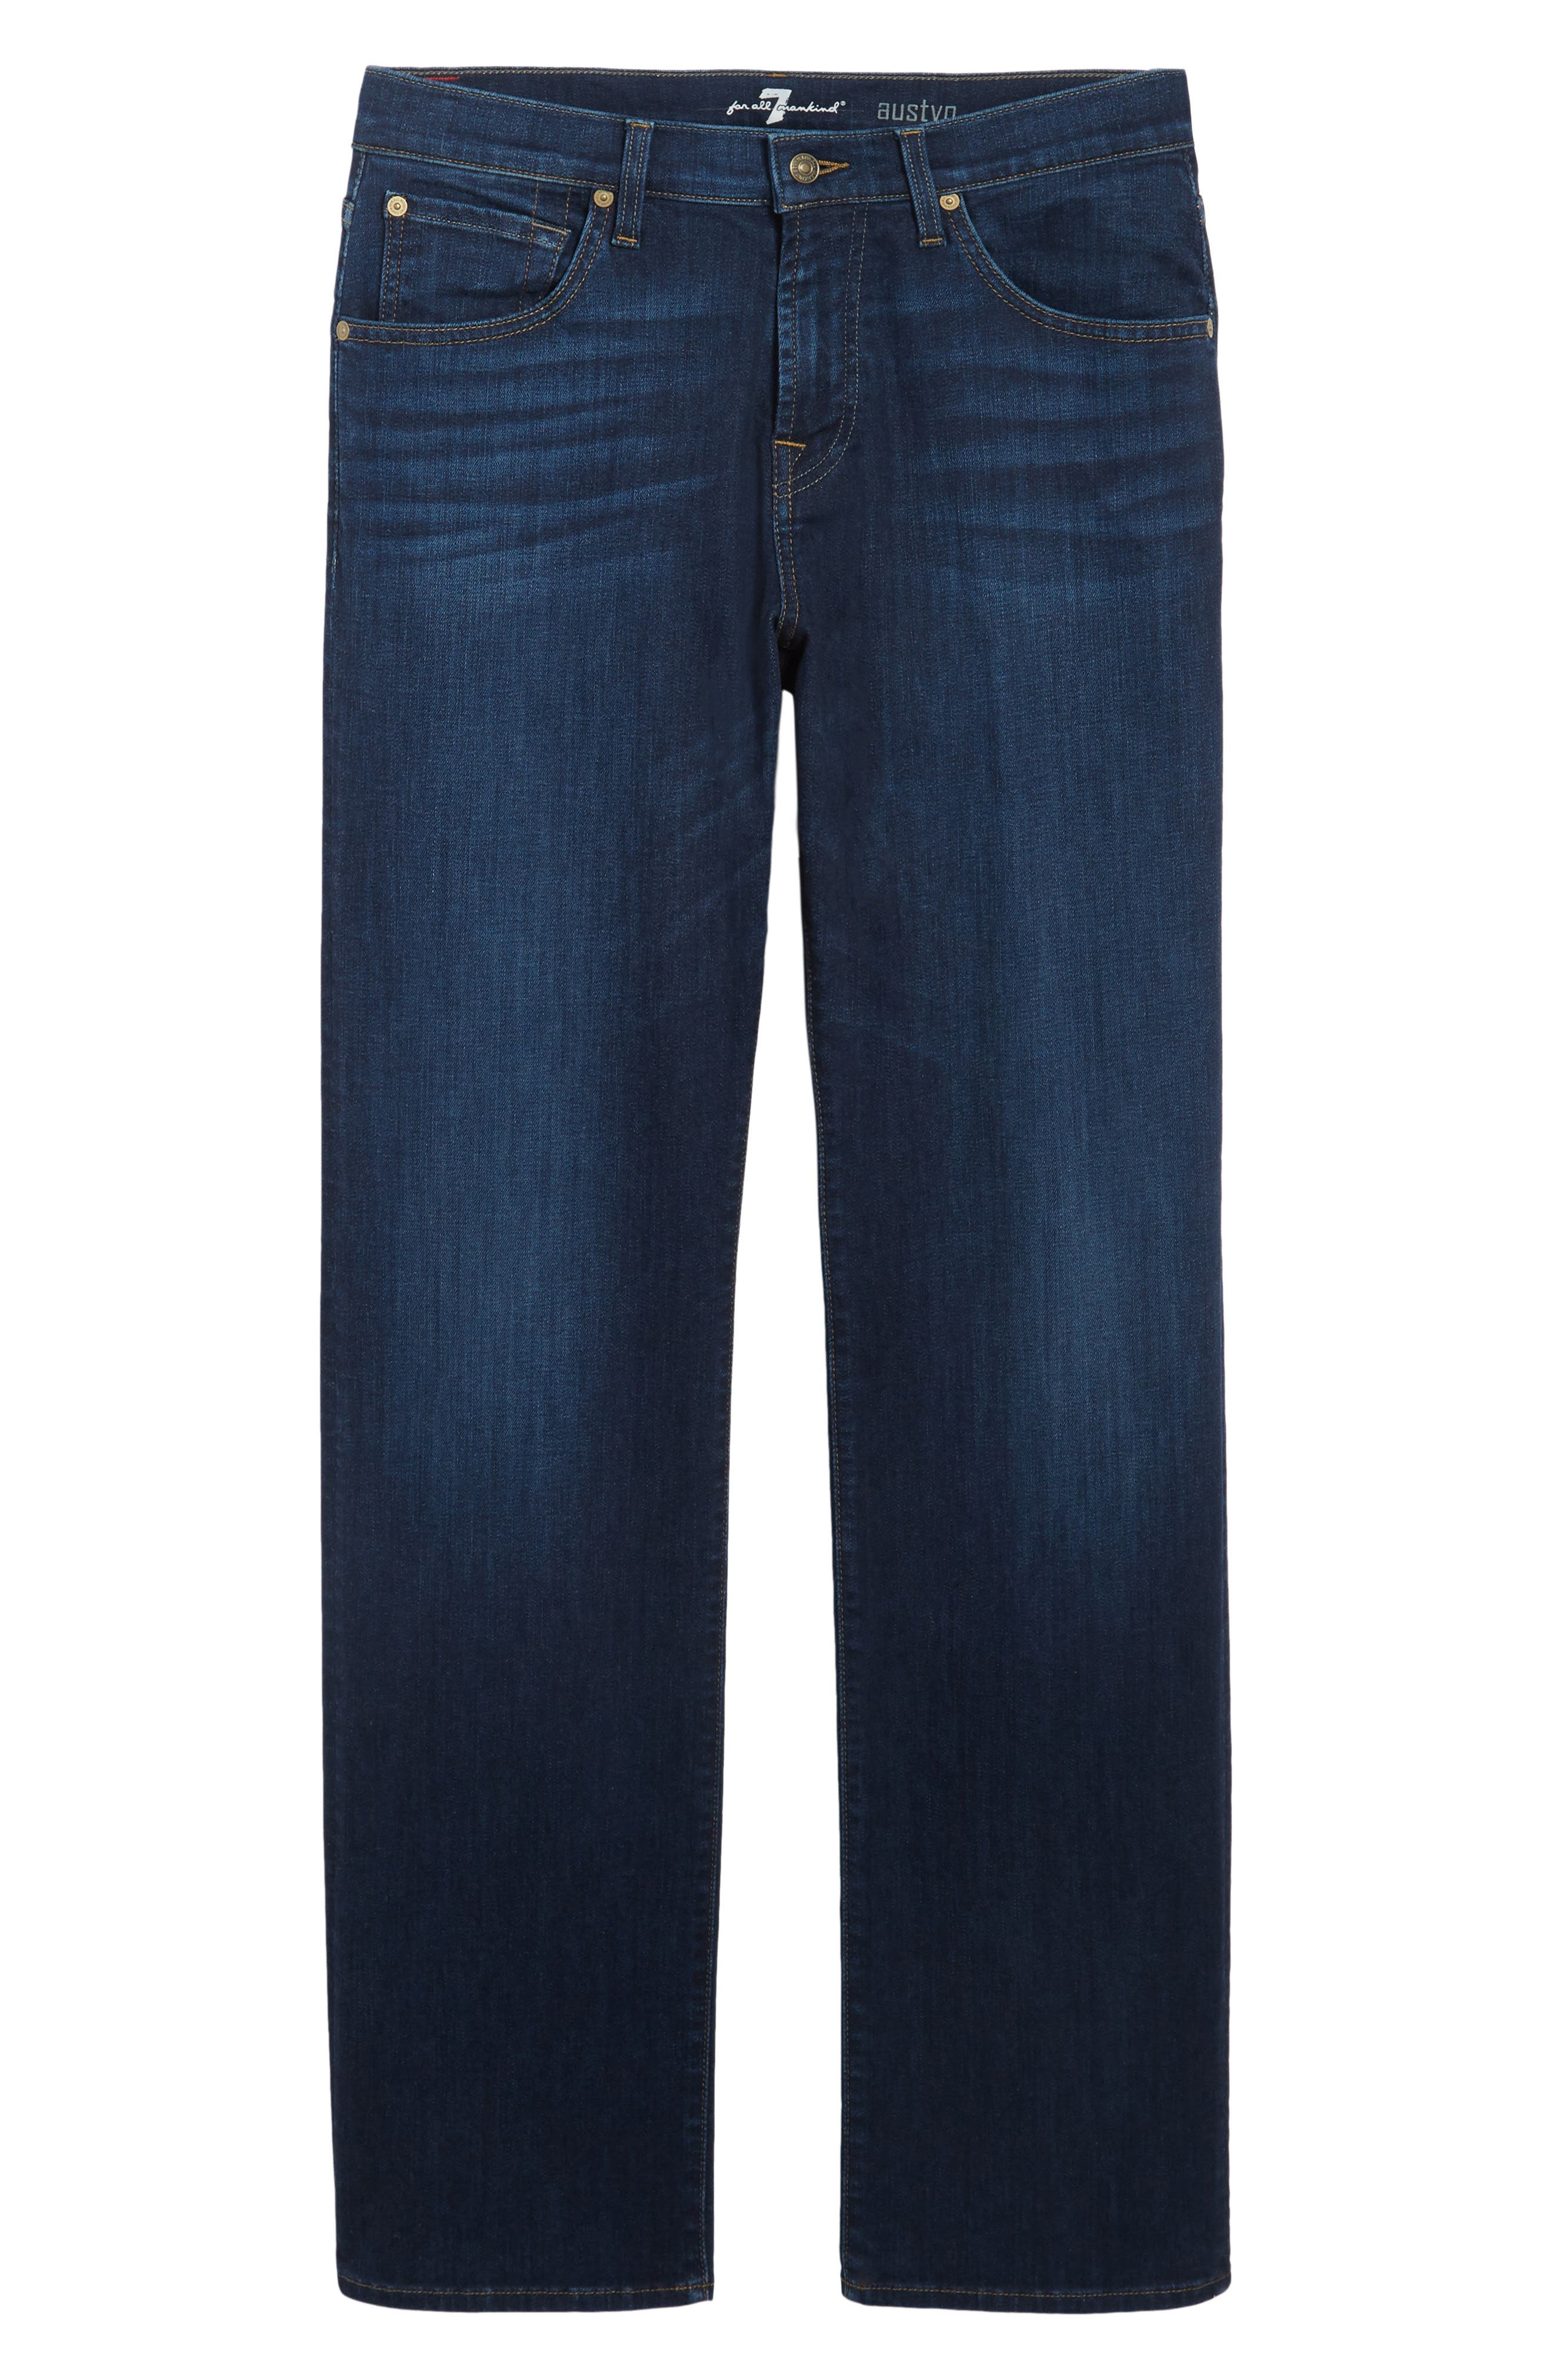 Austyn Relaxed Fit Jeans,                             Alternate thumbnail 6, color,                             Valley Stream